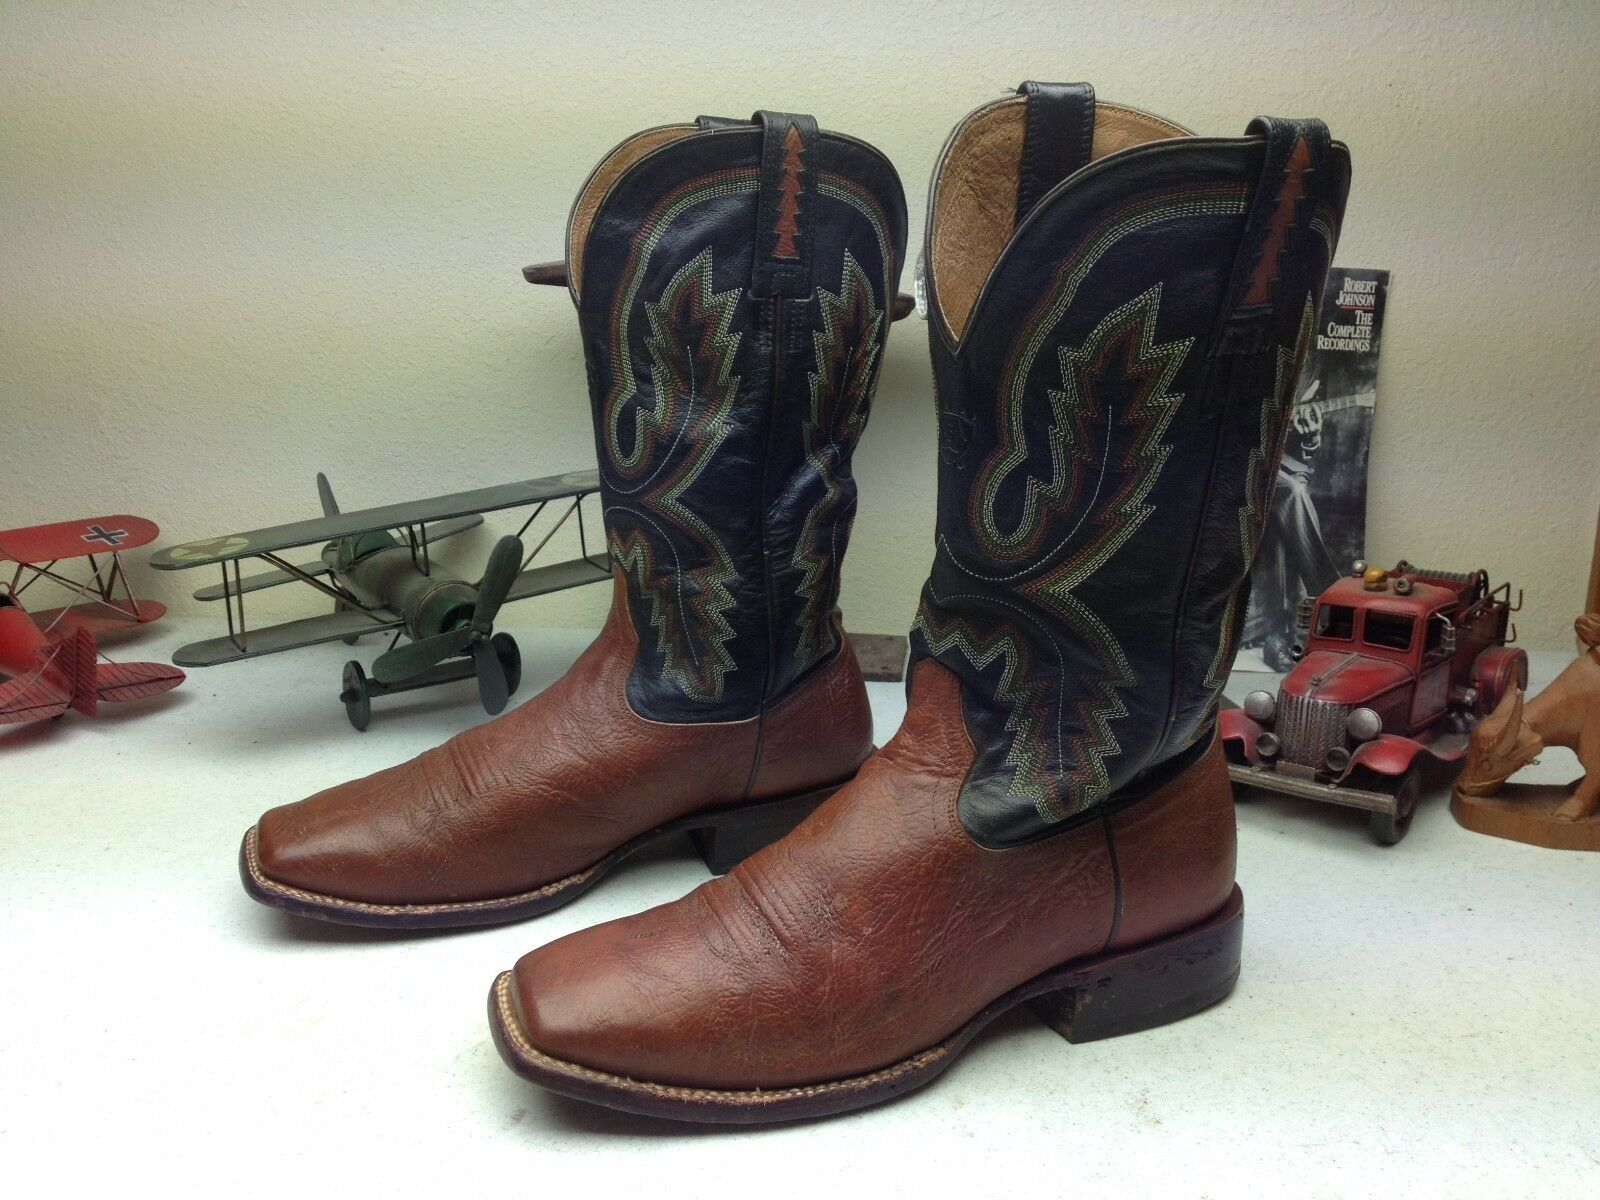 ARIAT SQUARE TOE DISTRESSED BROWN BROWN BROWN LEATHER WESTERN RODEO COWBOY WORK BOOTS 11 EE bebc9b